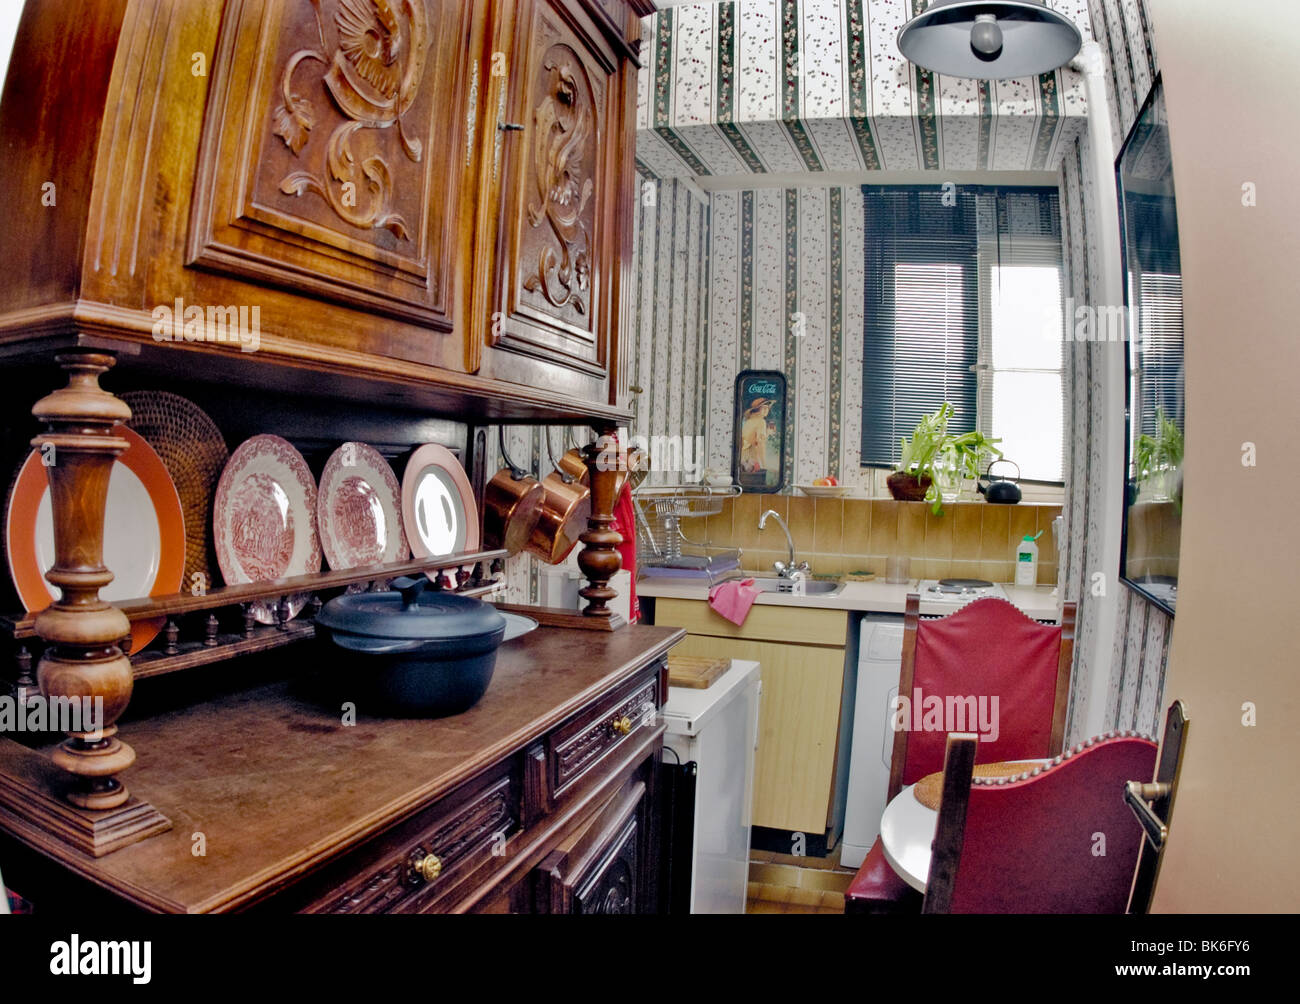 Old Kitchen Immagini & Old Kitchen Fotos Stock - Alamy